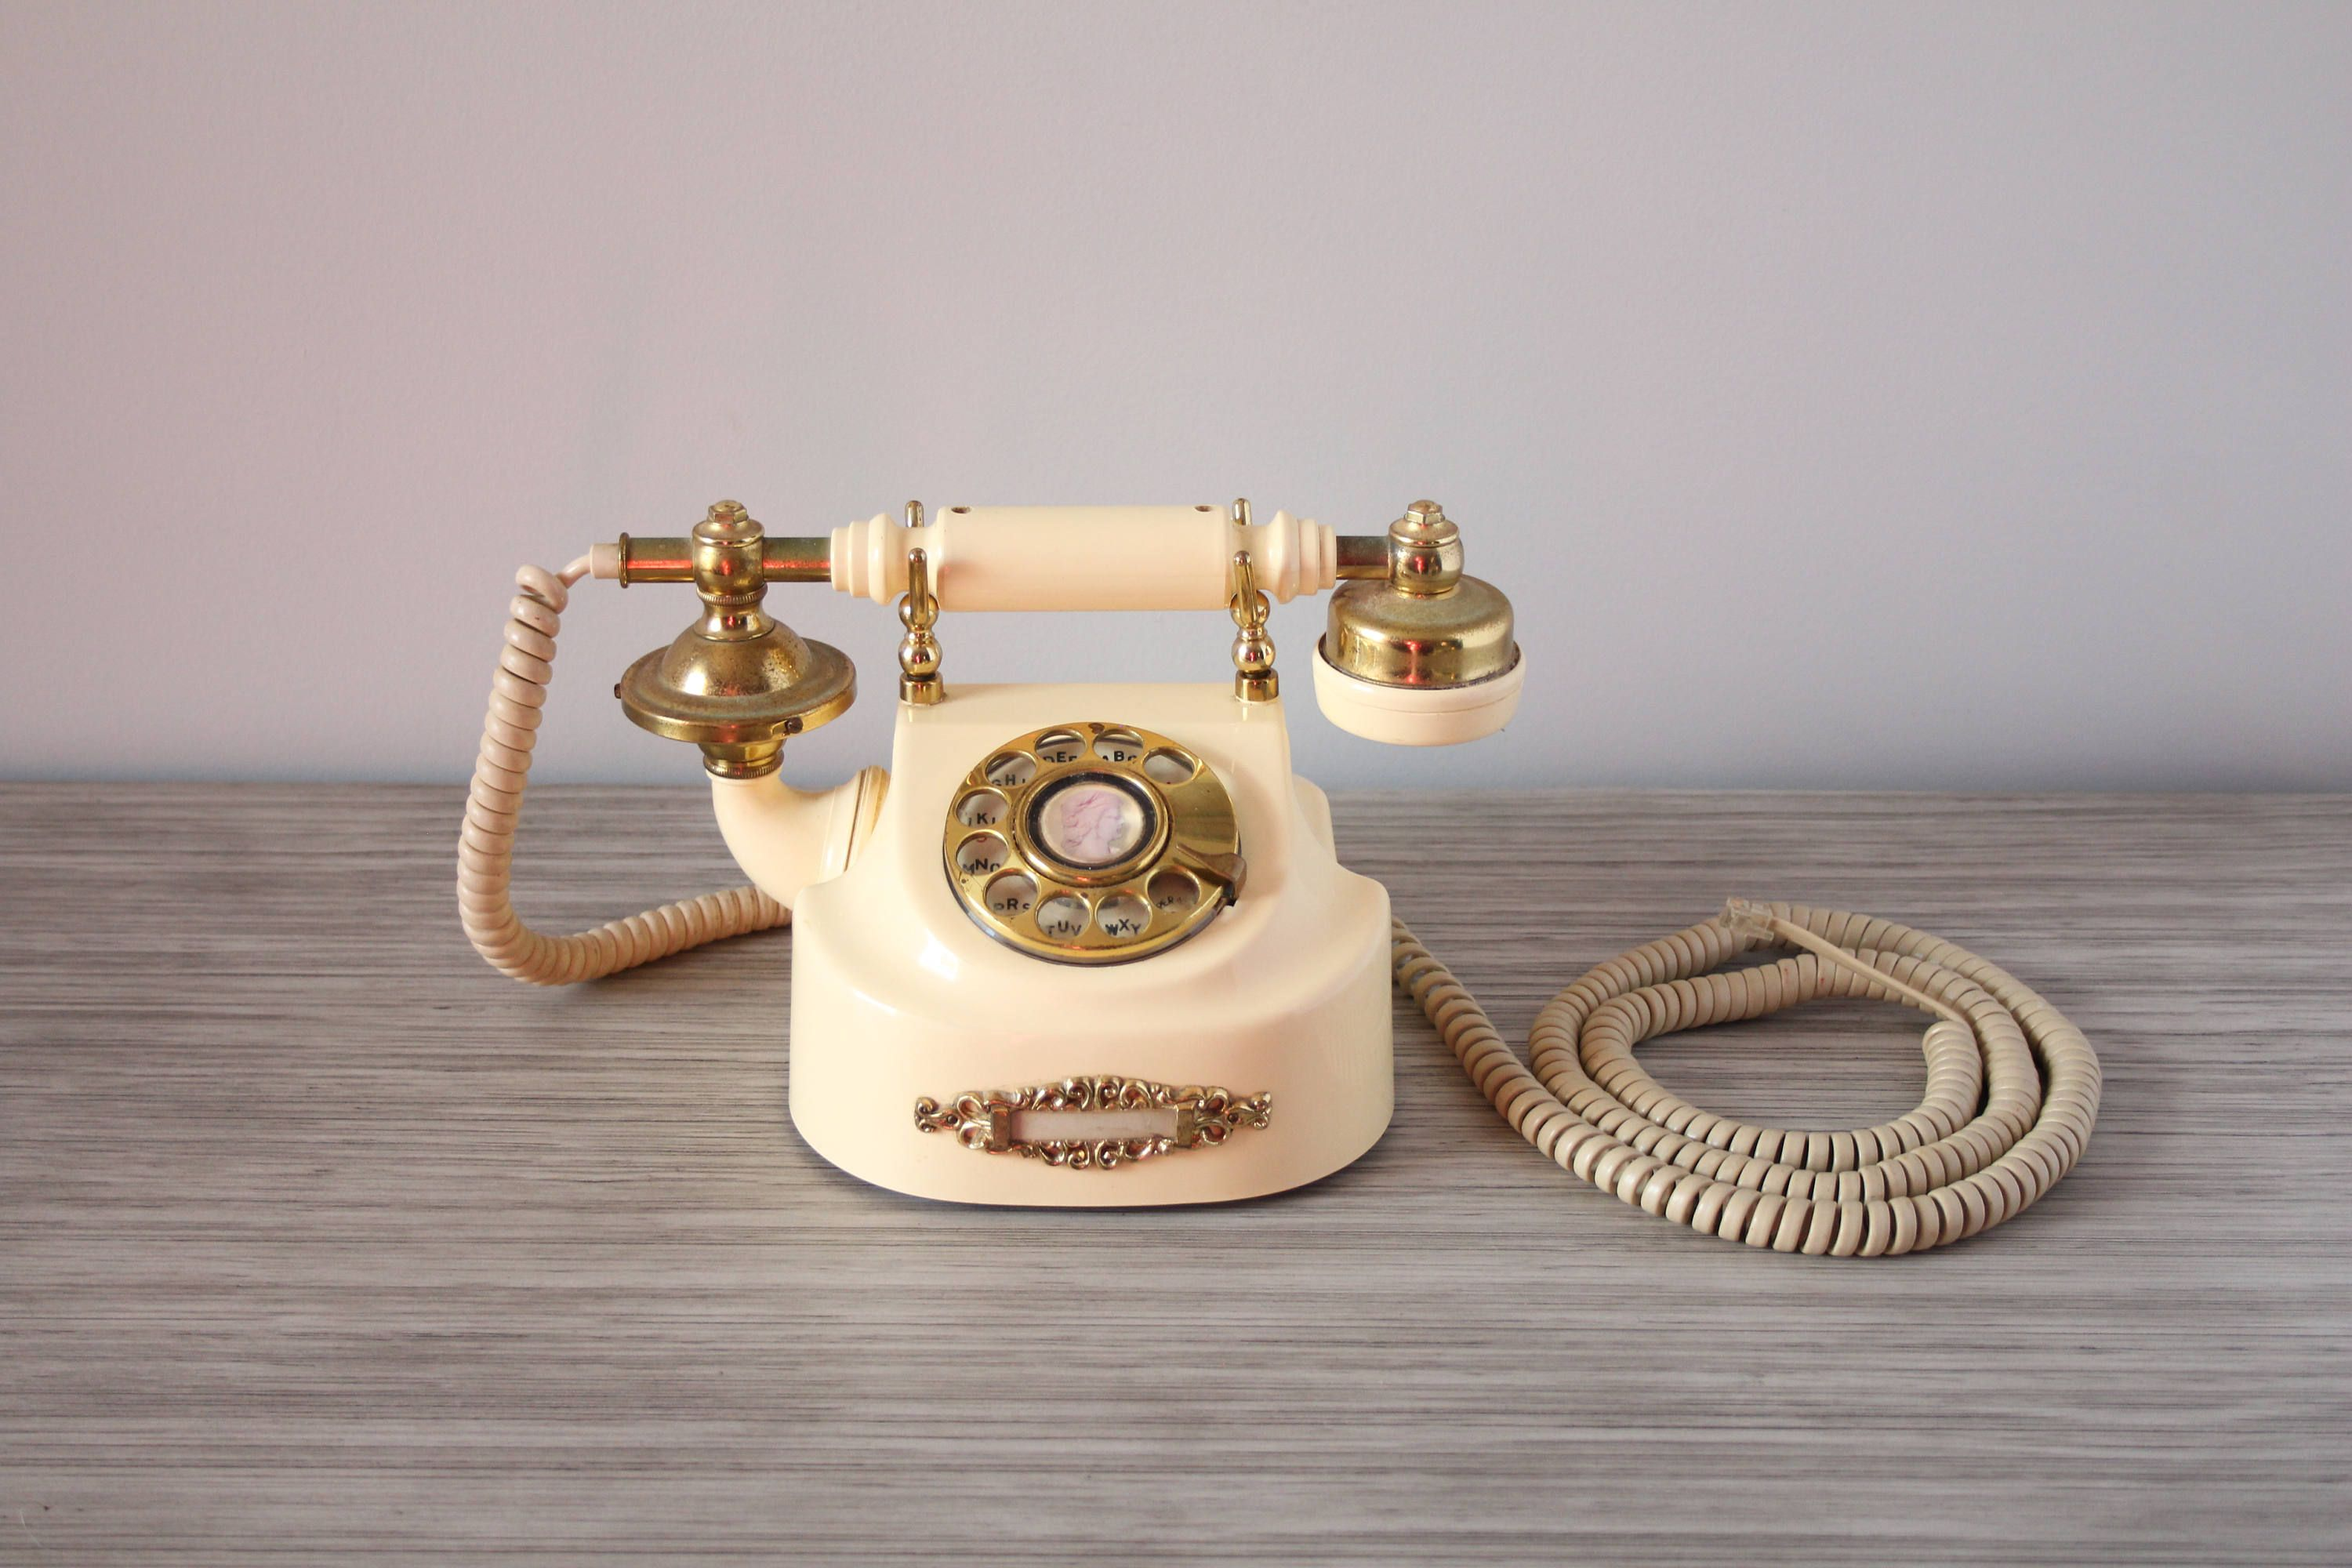 medium resolution of vintage french style working rotary phone solid brass hardware ivory plastic body new york telephone company photography store display prop by